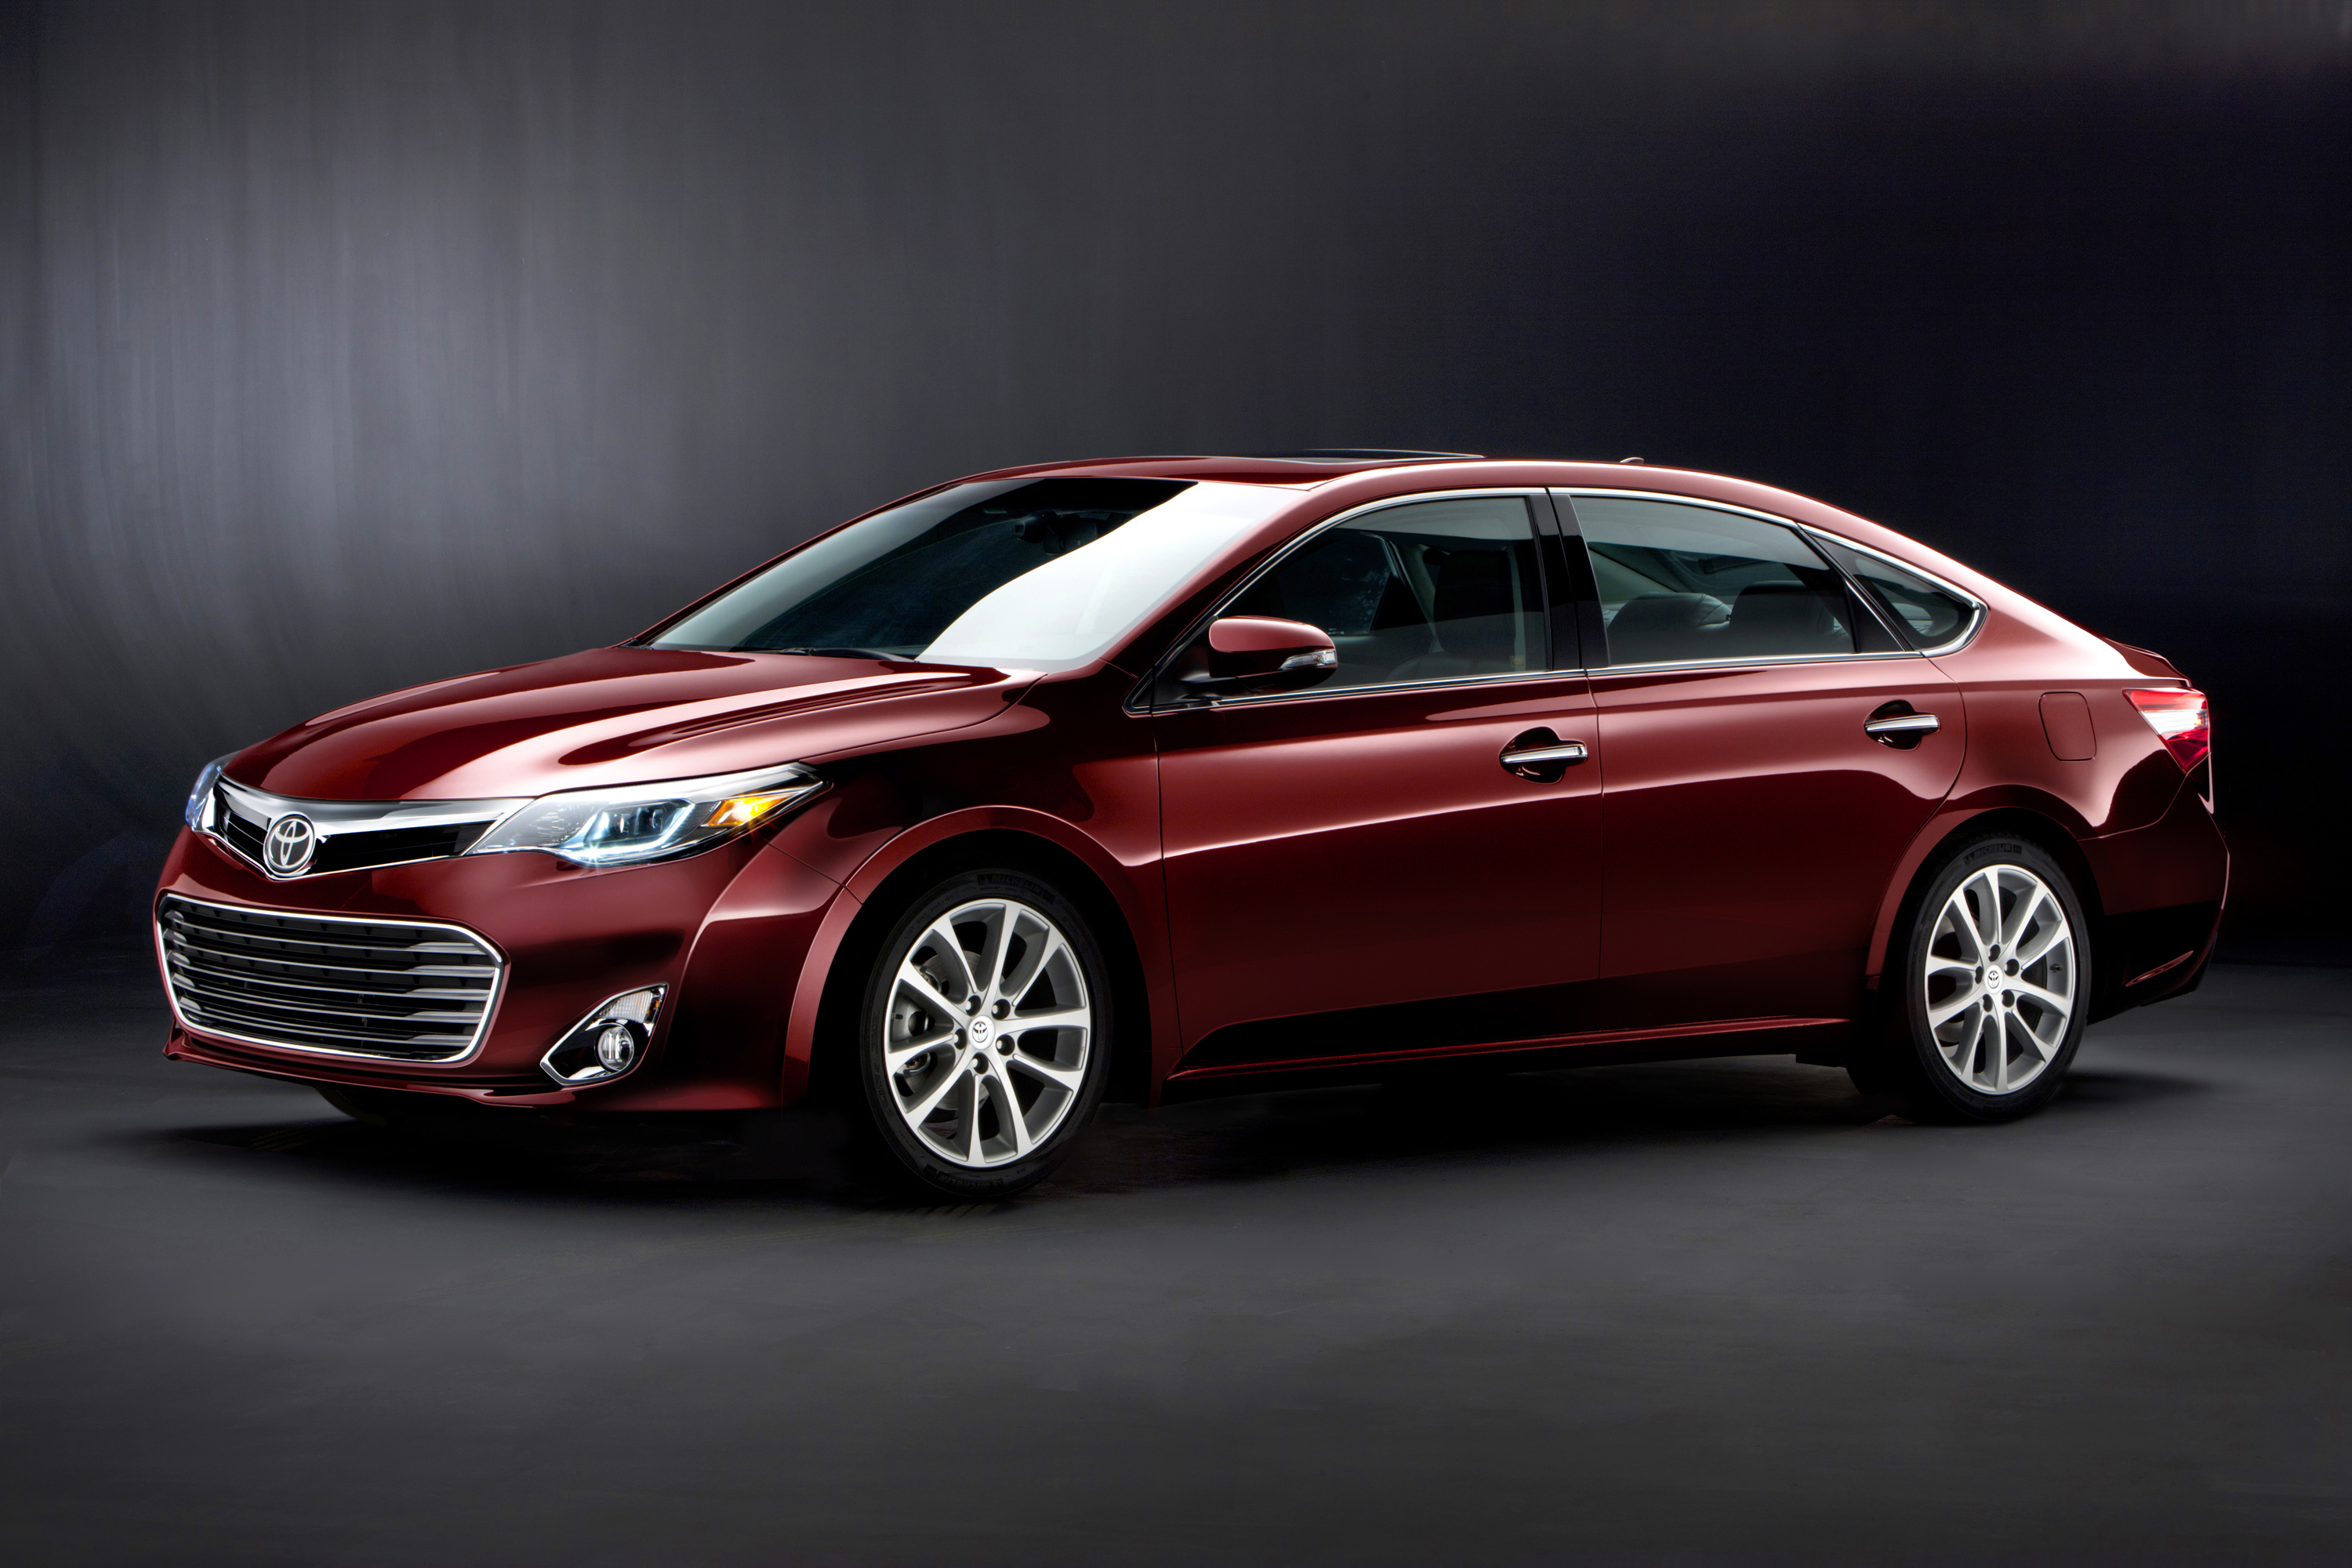 2013 toyota avalon gets more green adds hybrid model. Black Bedroom Furniture Sets. Home Design Ideas